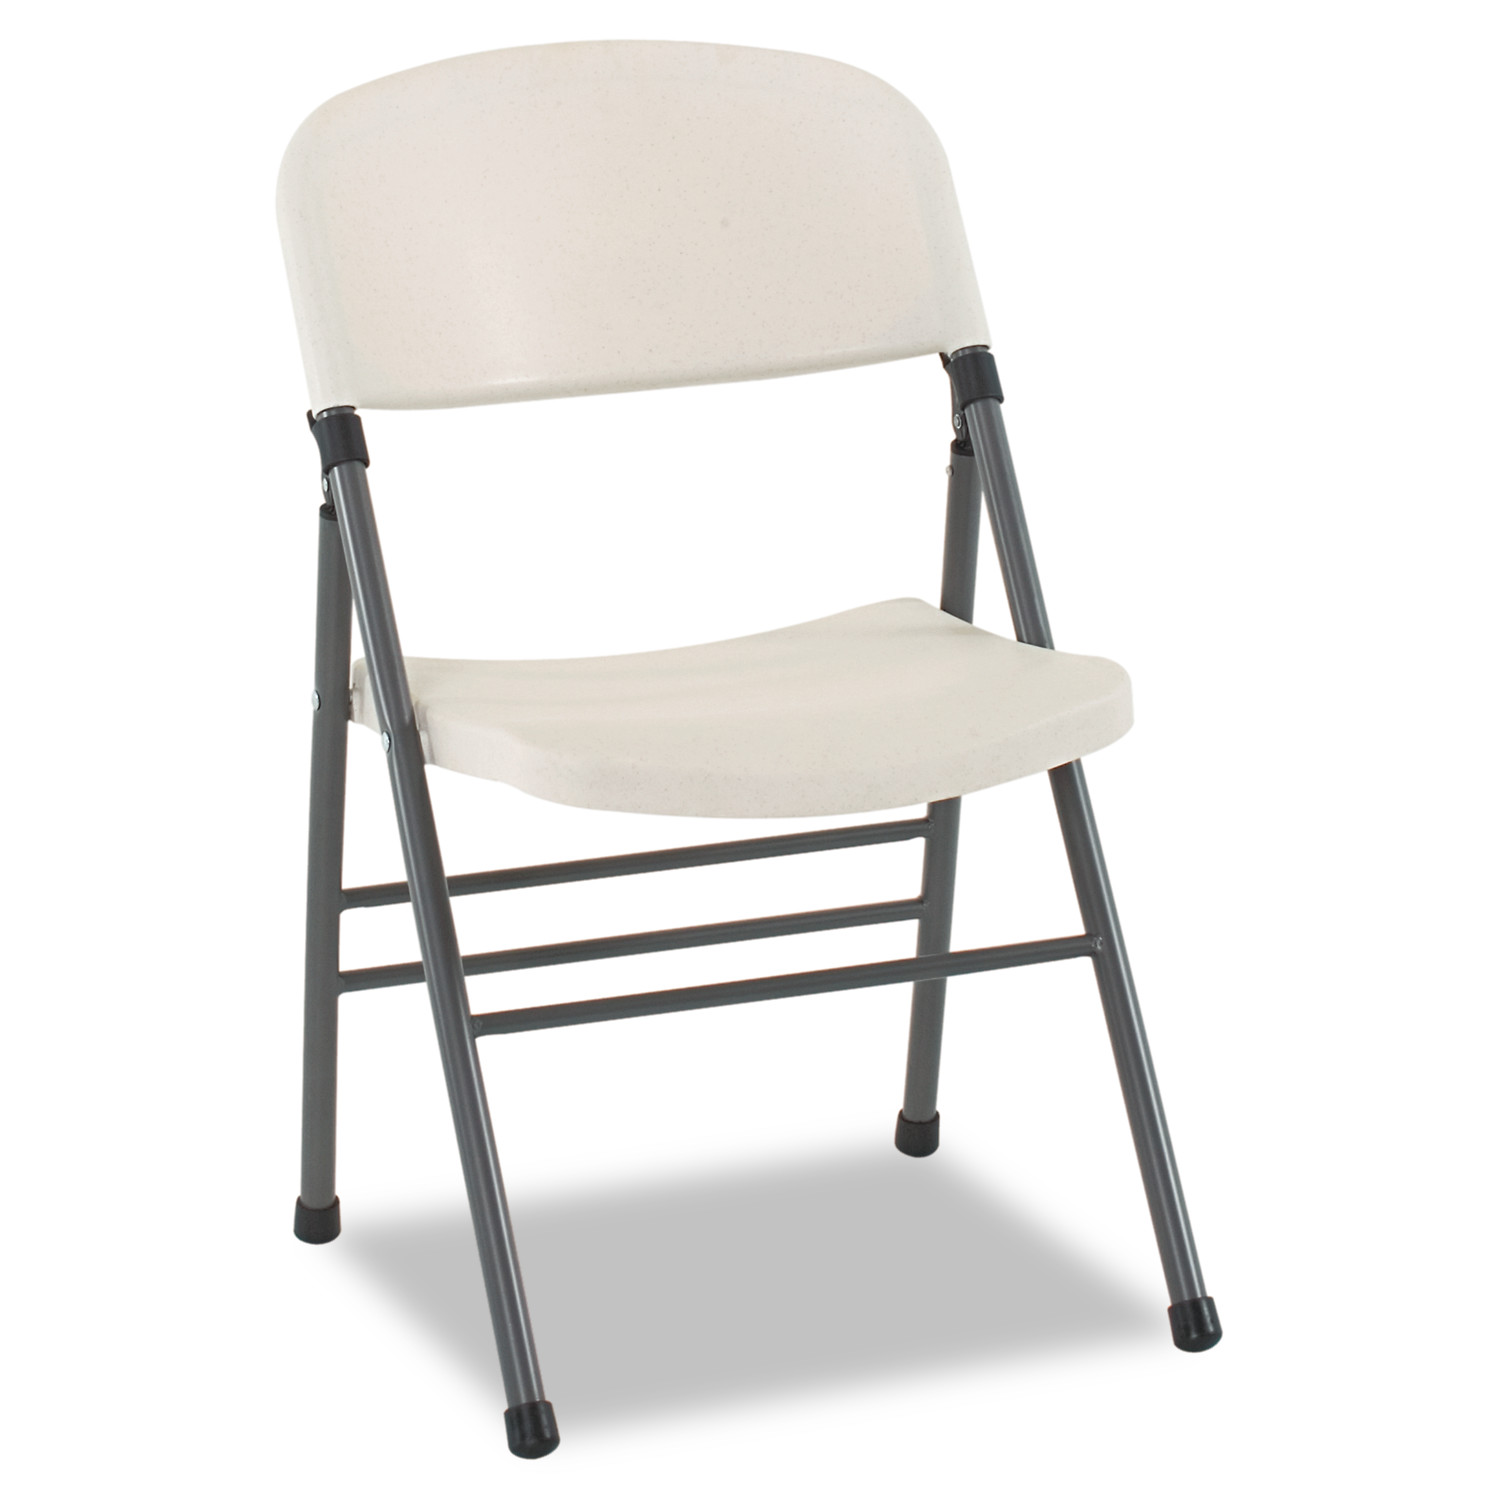 Cosco Endura Series Resin Molded Folding Chair, Pewter Frame White Speckle, 4 Carton by Cosco